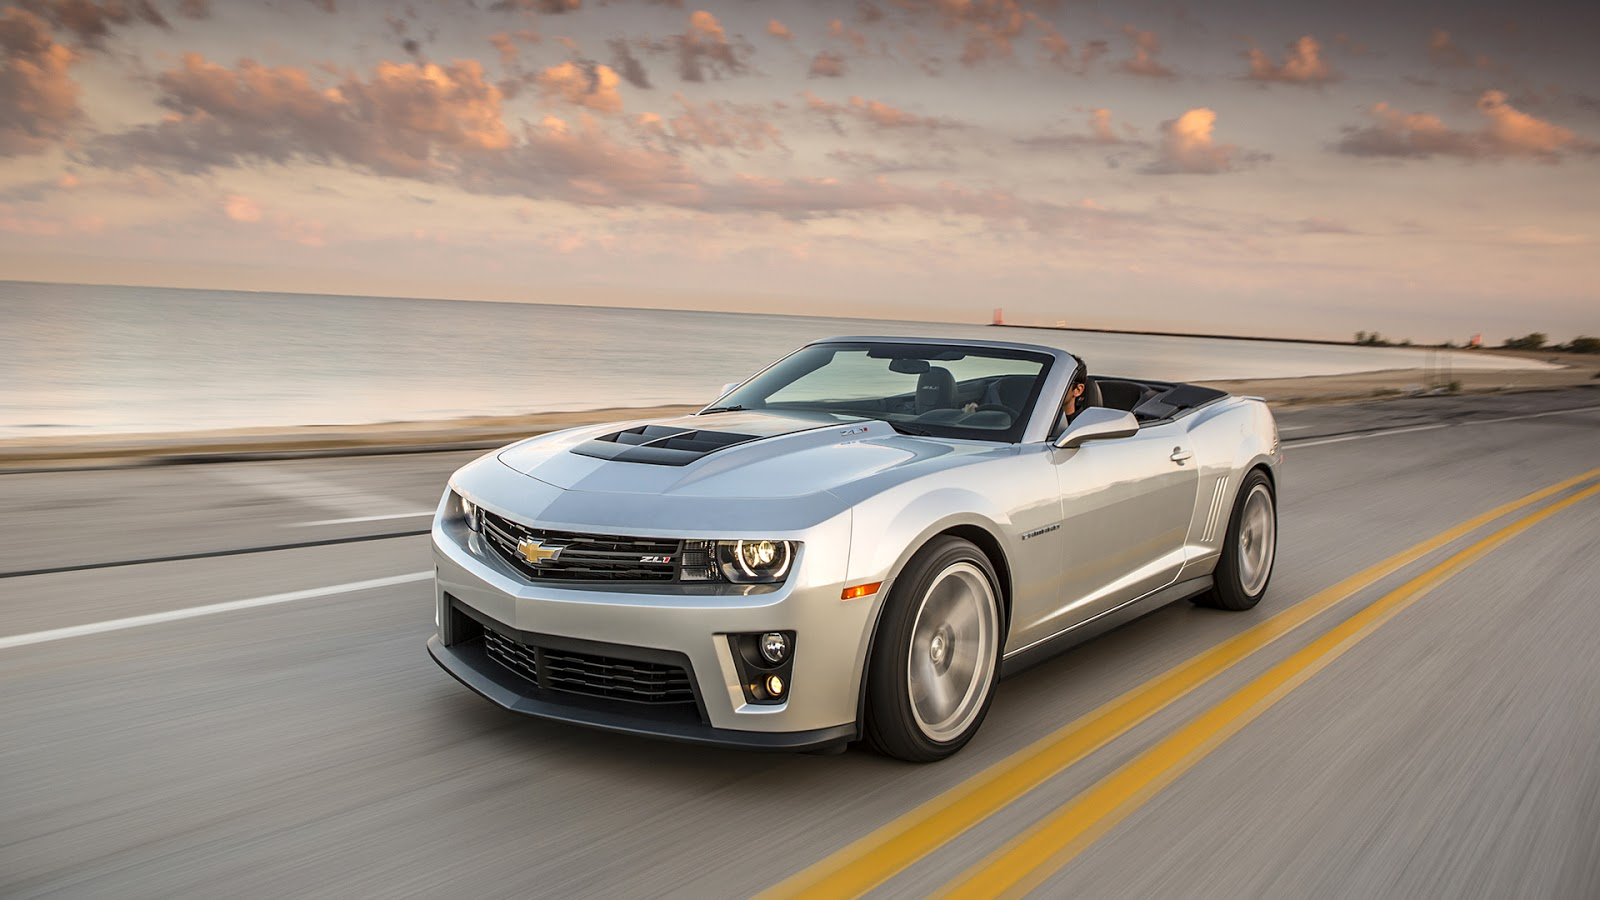 2013 Chevrolet Camaro Zl1 In Triple White Wallpapers